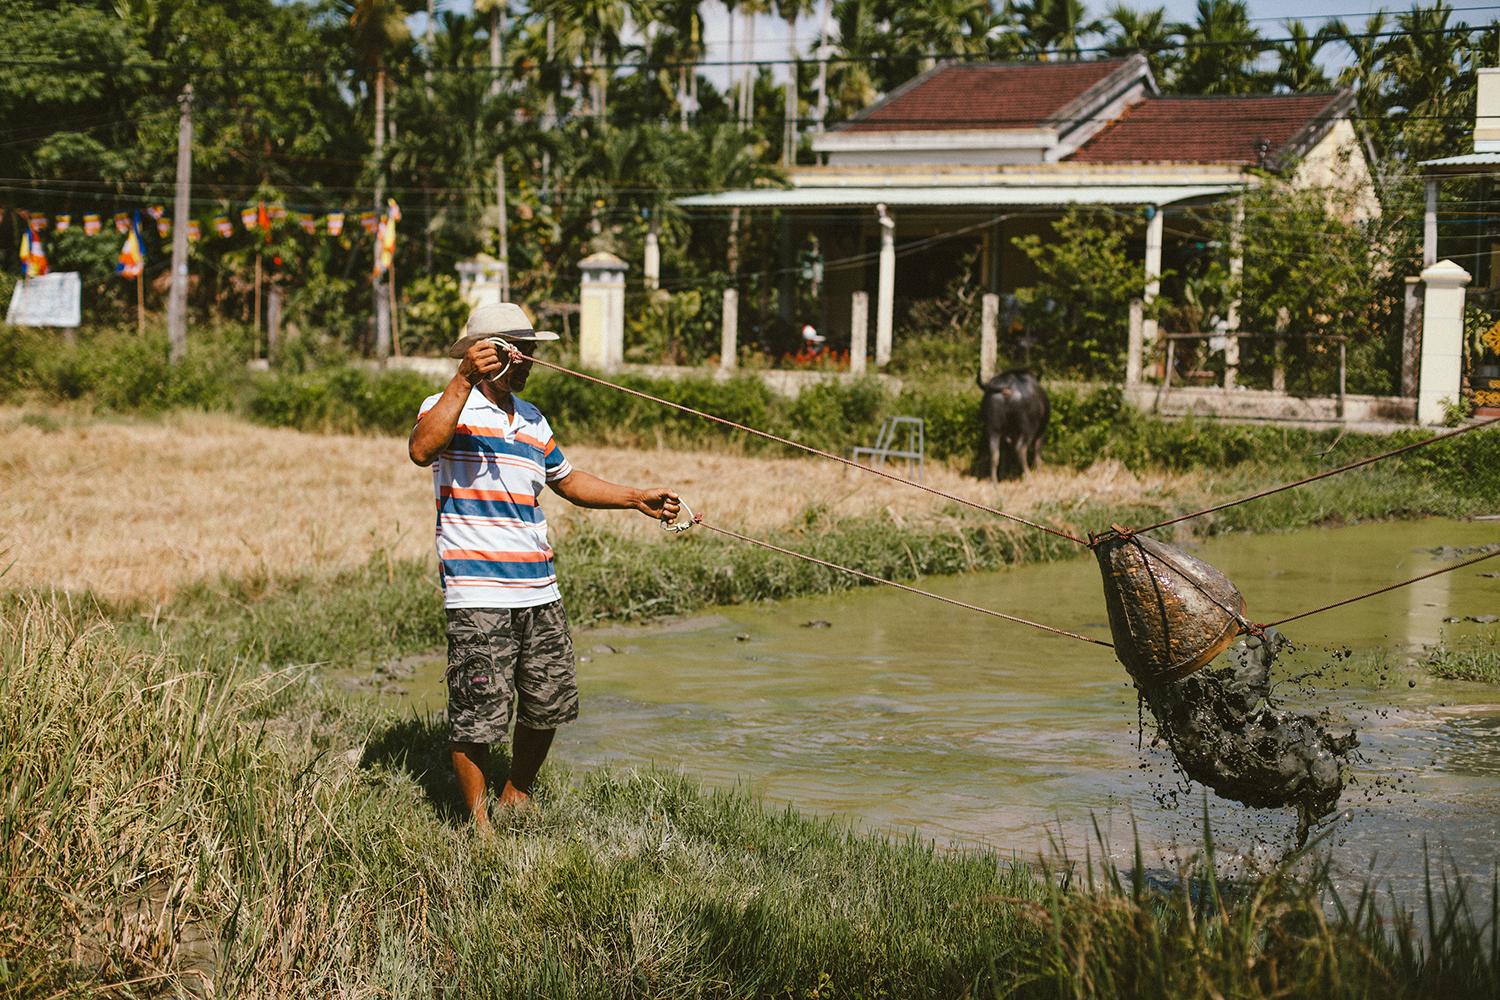 Hoang's brother showing us how to water the rice field